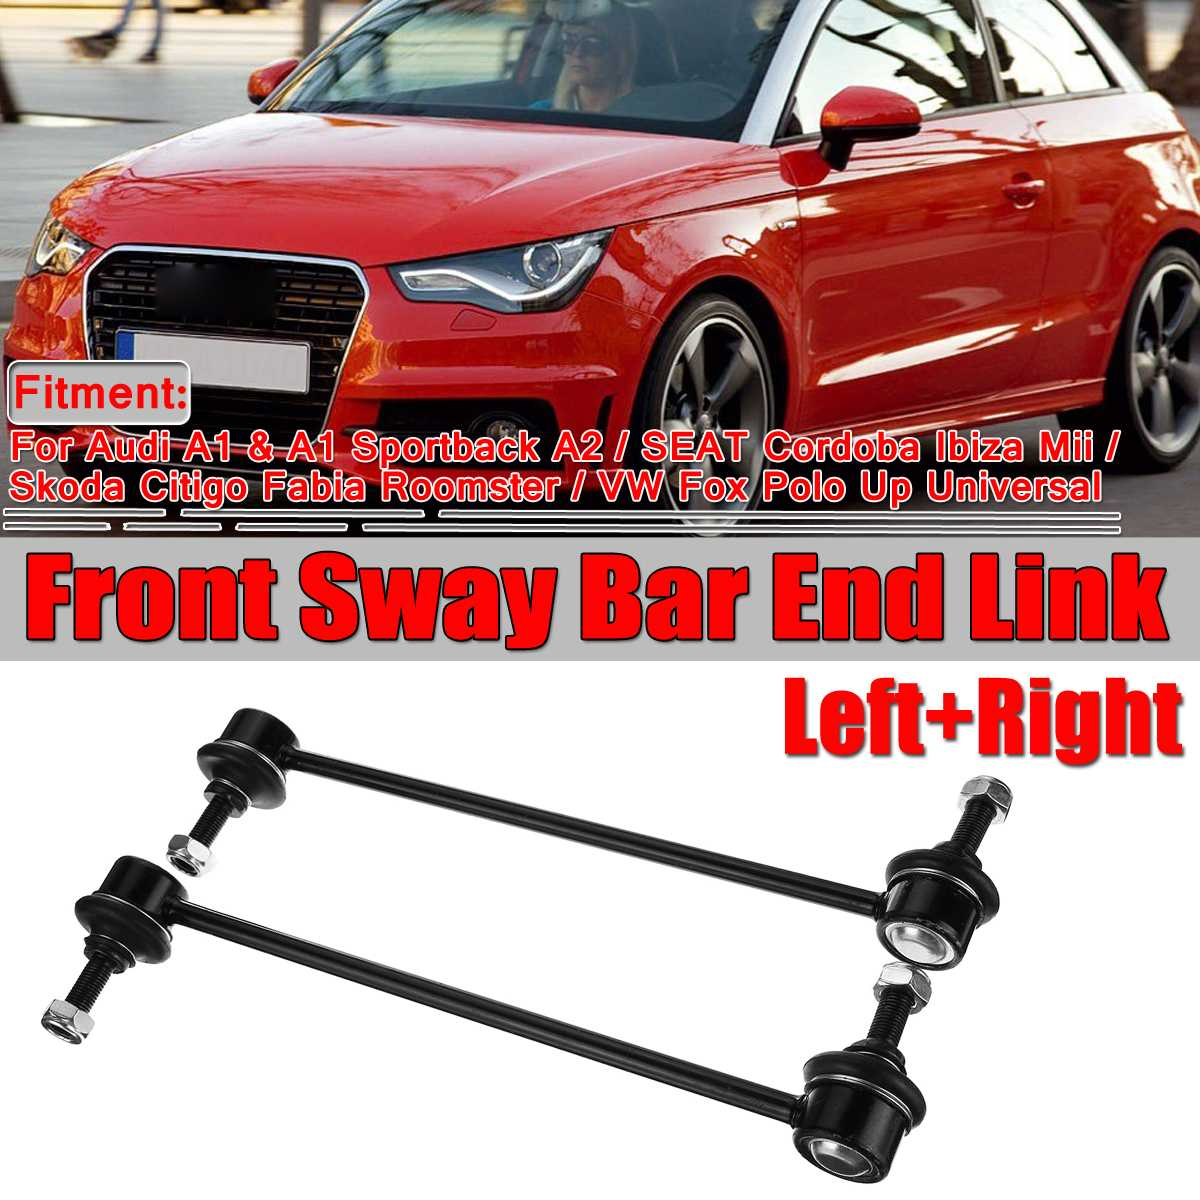 2x Car Front Sway Bar End Link For VW For Polo Up Seat Ibiza For Skoda Fabia For Audi A1 A2 Stabilizer Anti Roll Bar Drop Rods